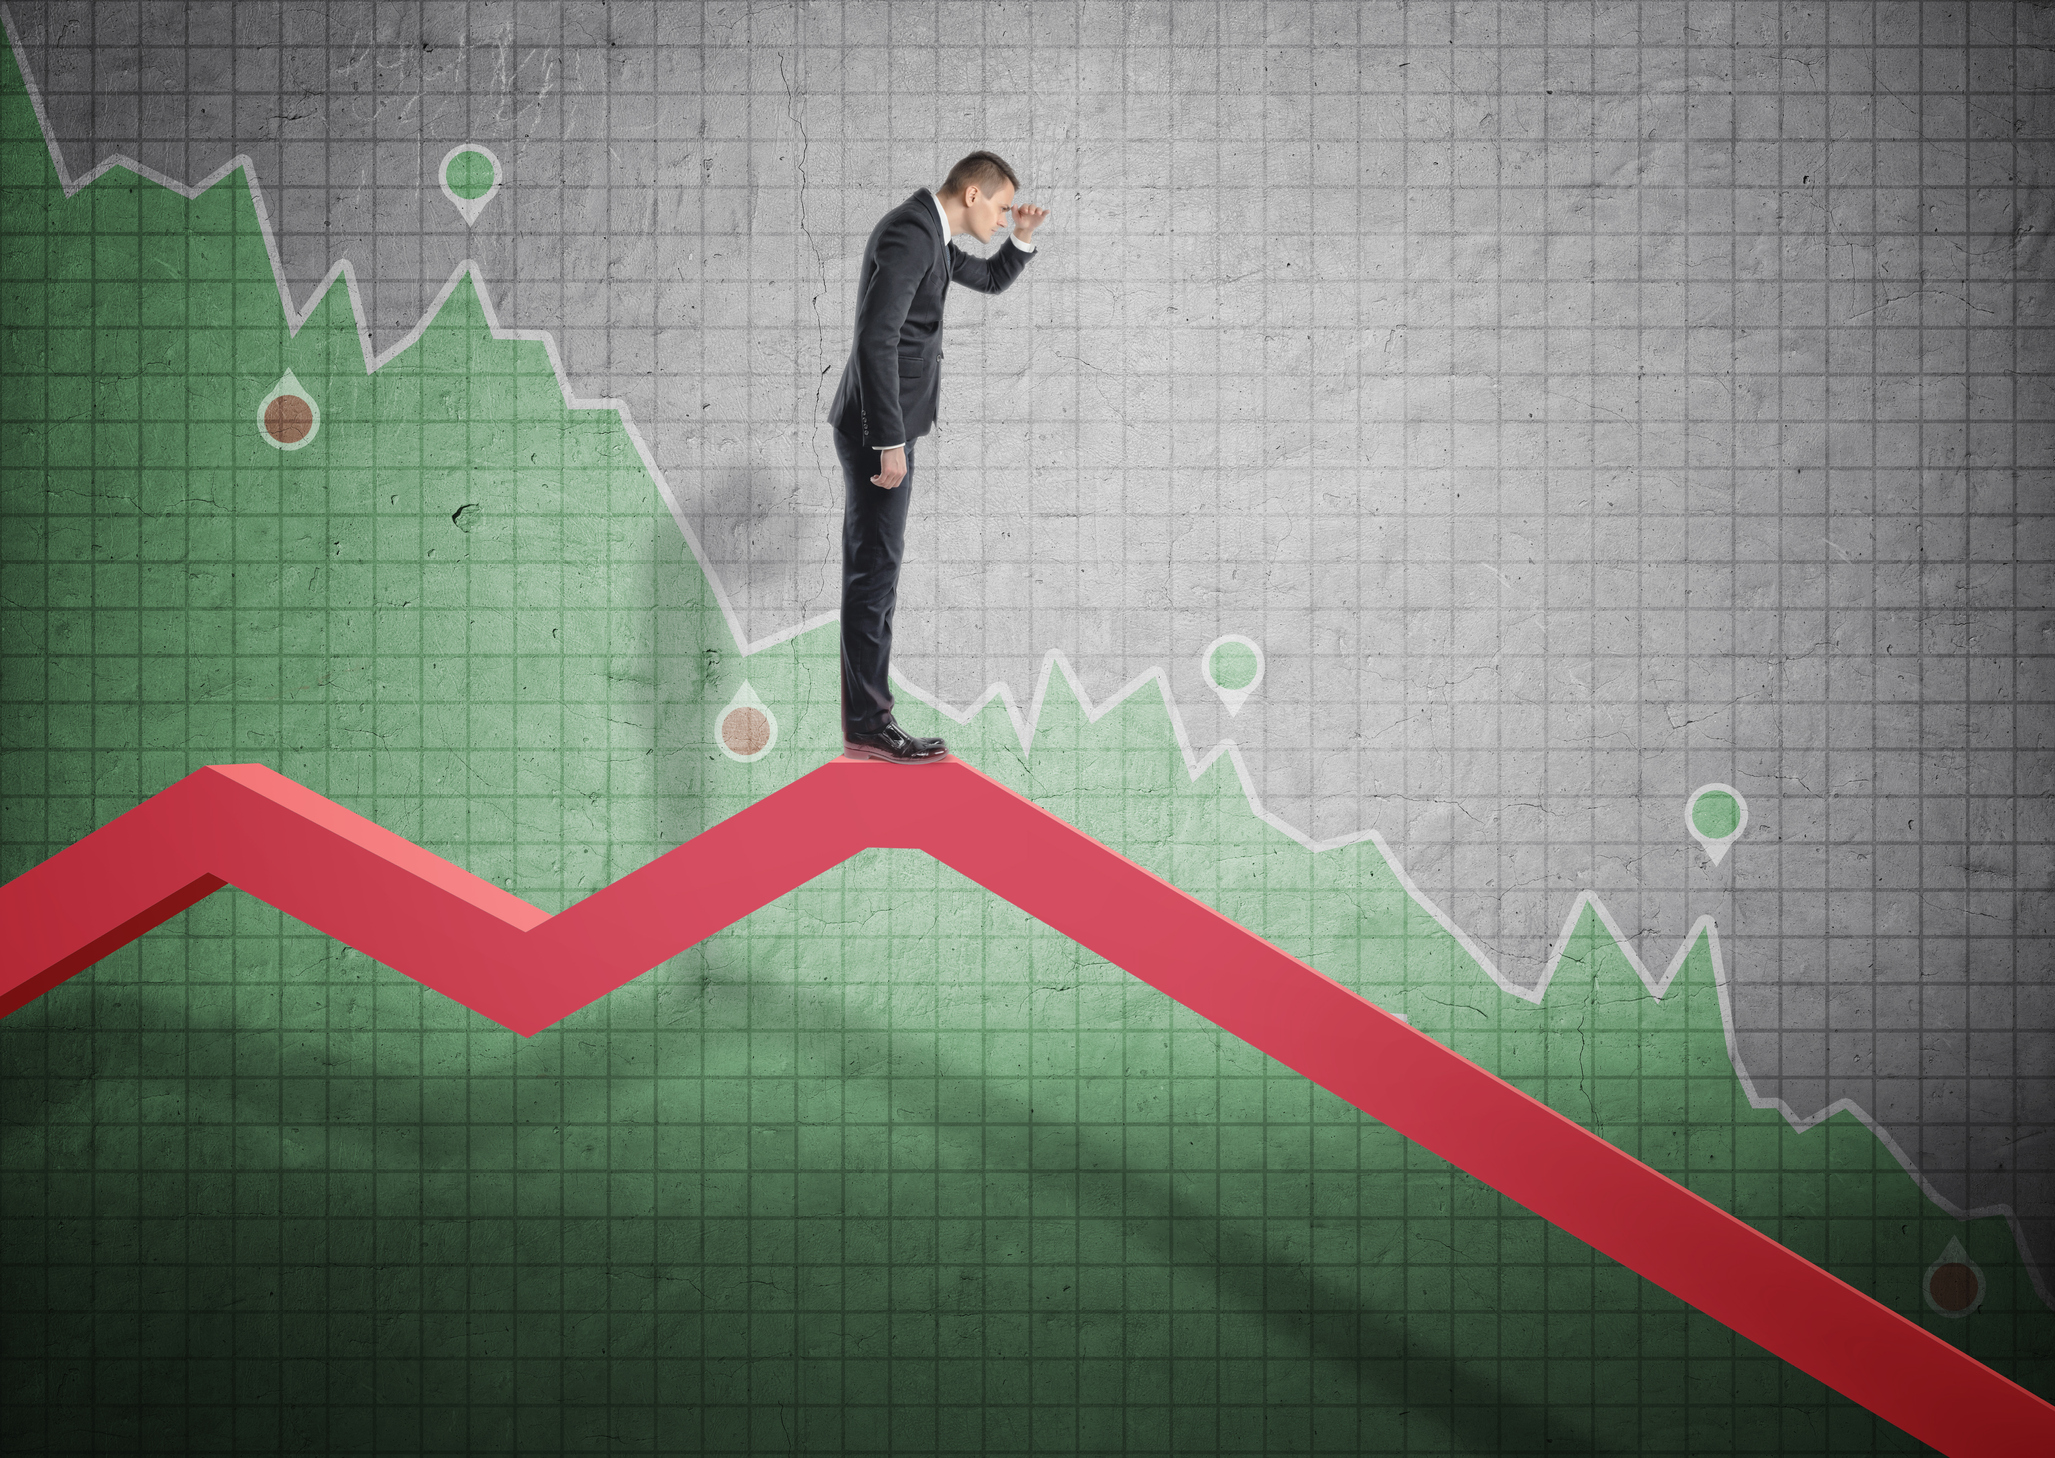 Share Prices Plummet Following Divestitures This Year